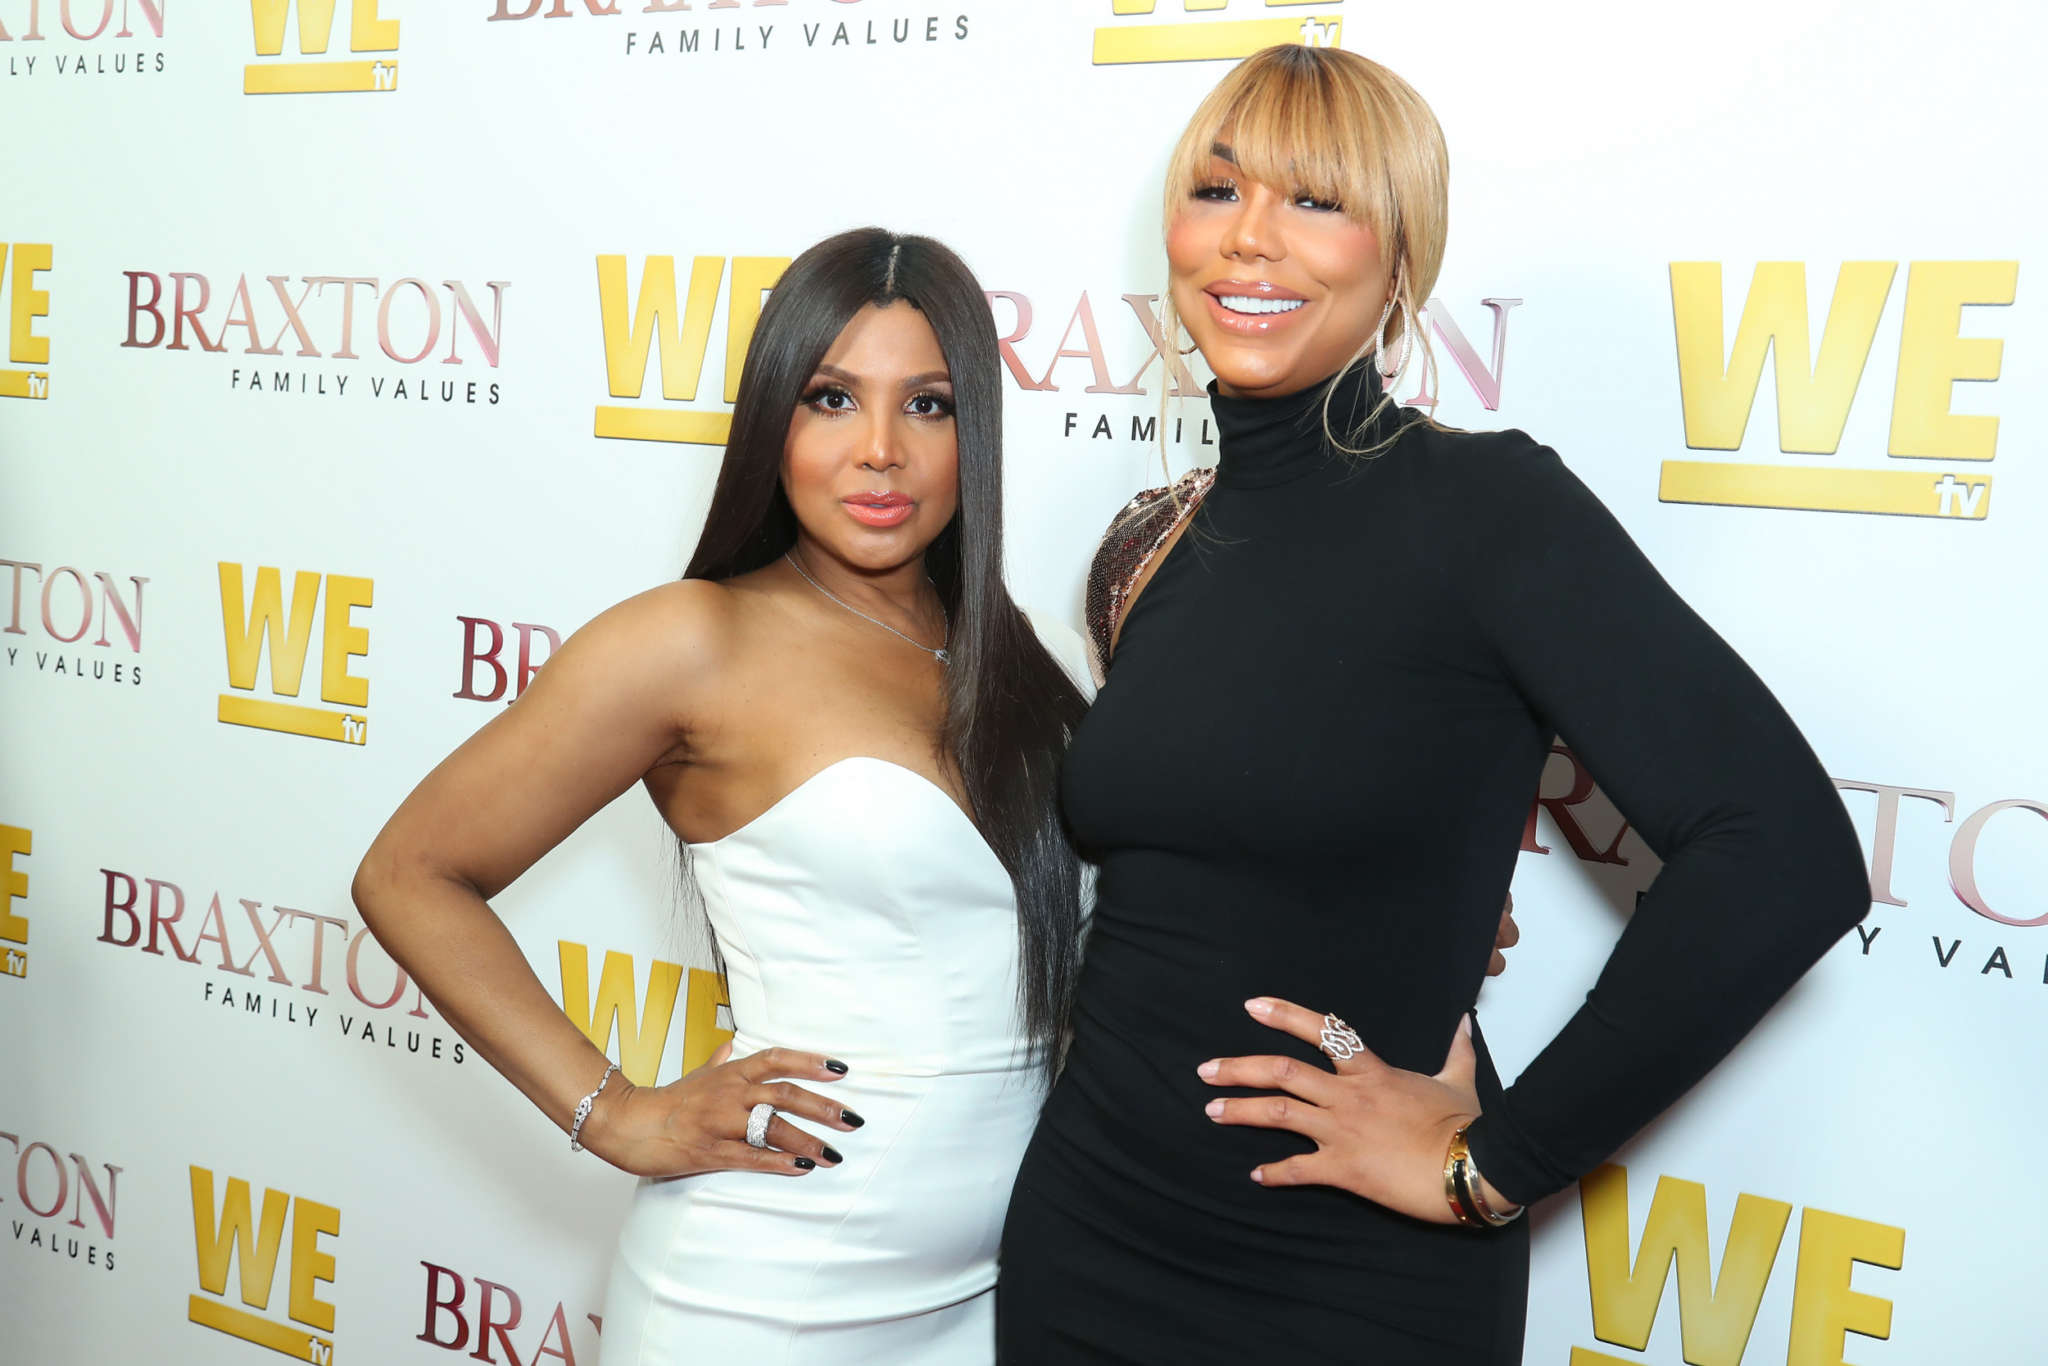 Tamar Braxton and WeTV part ways following singer's cutting revelations about network